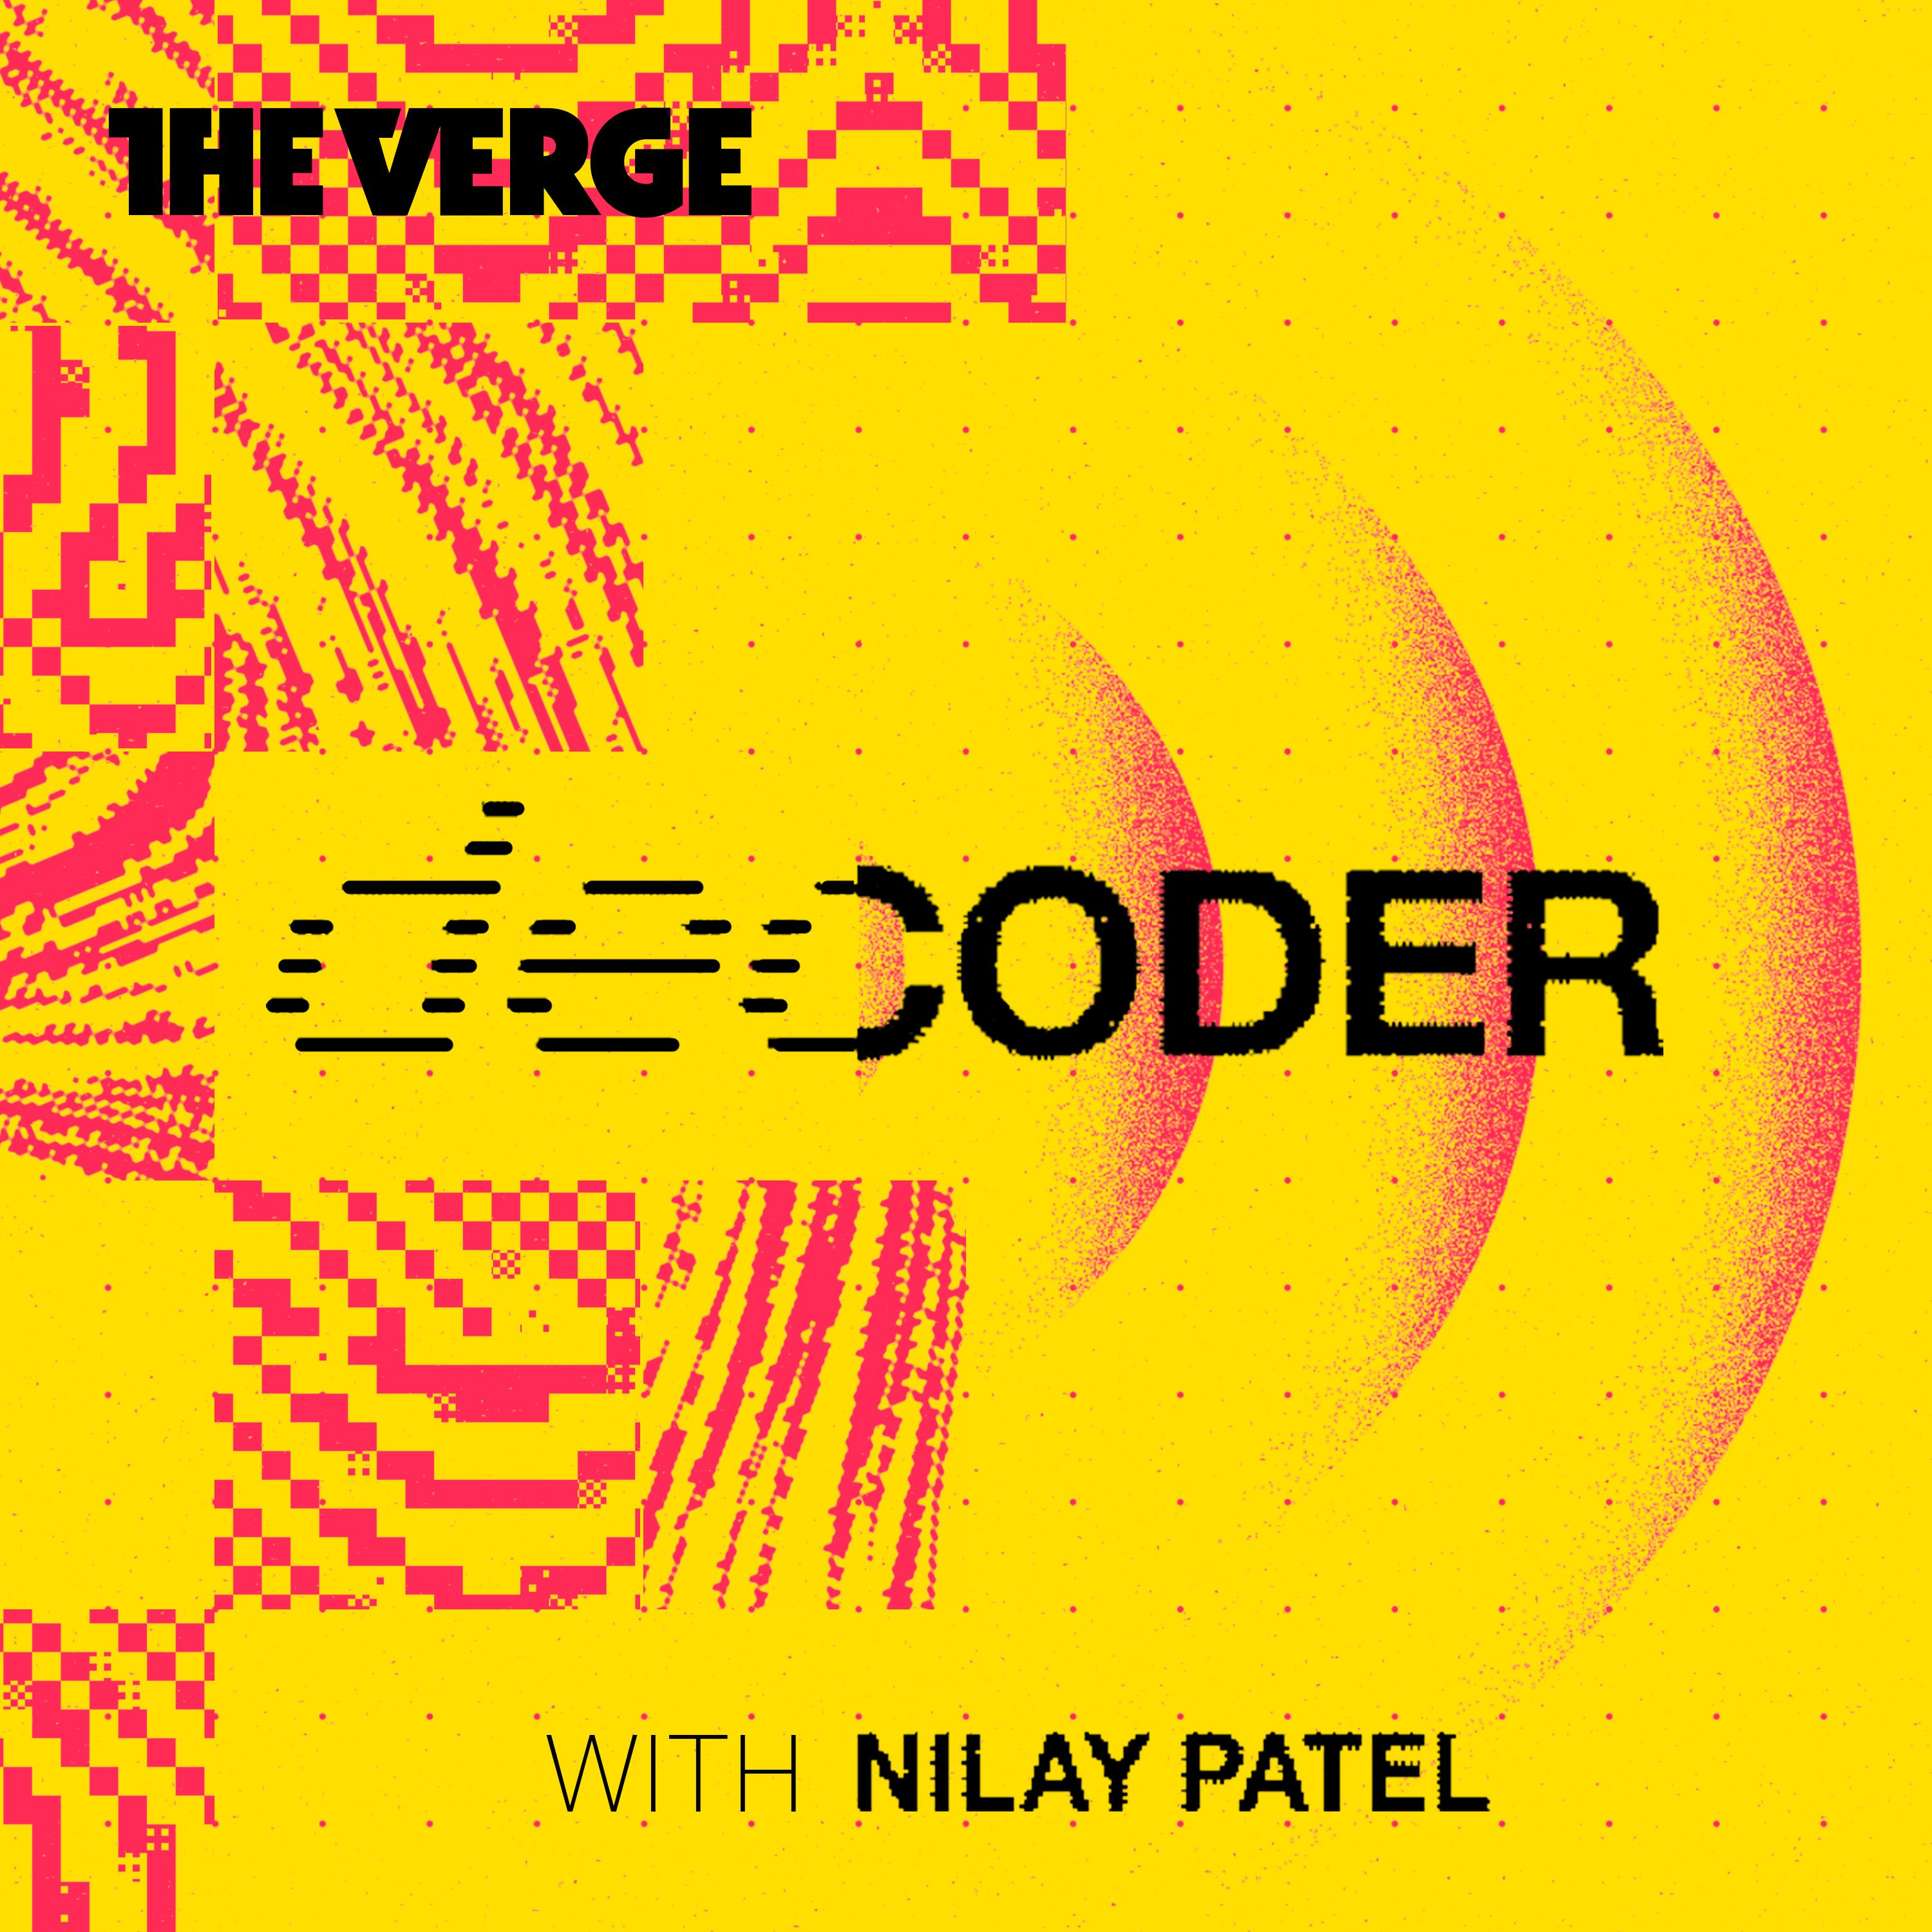 Introducing Decoder with Nilay Patel: Mark Cuban on the future of American business